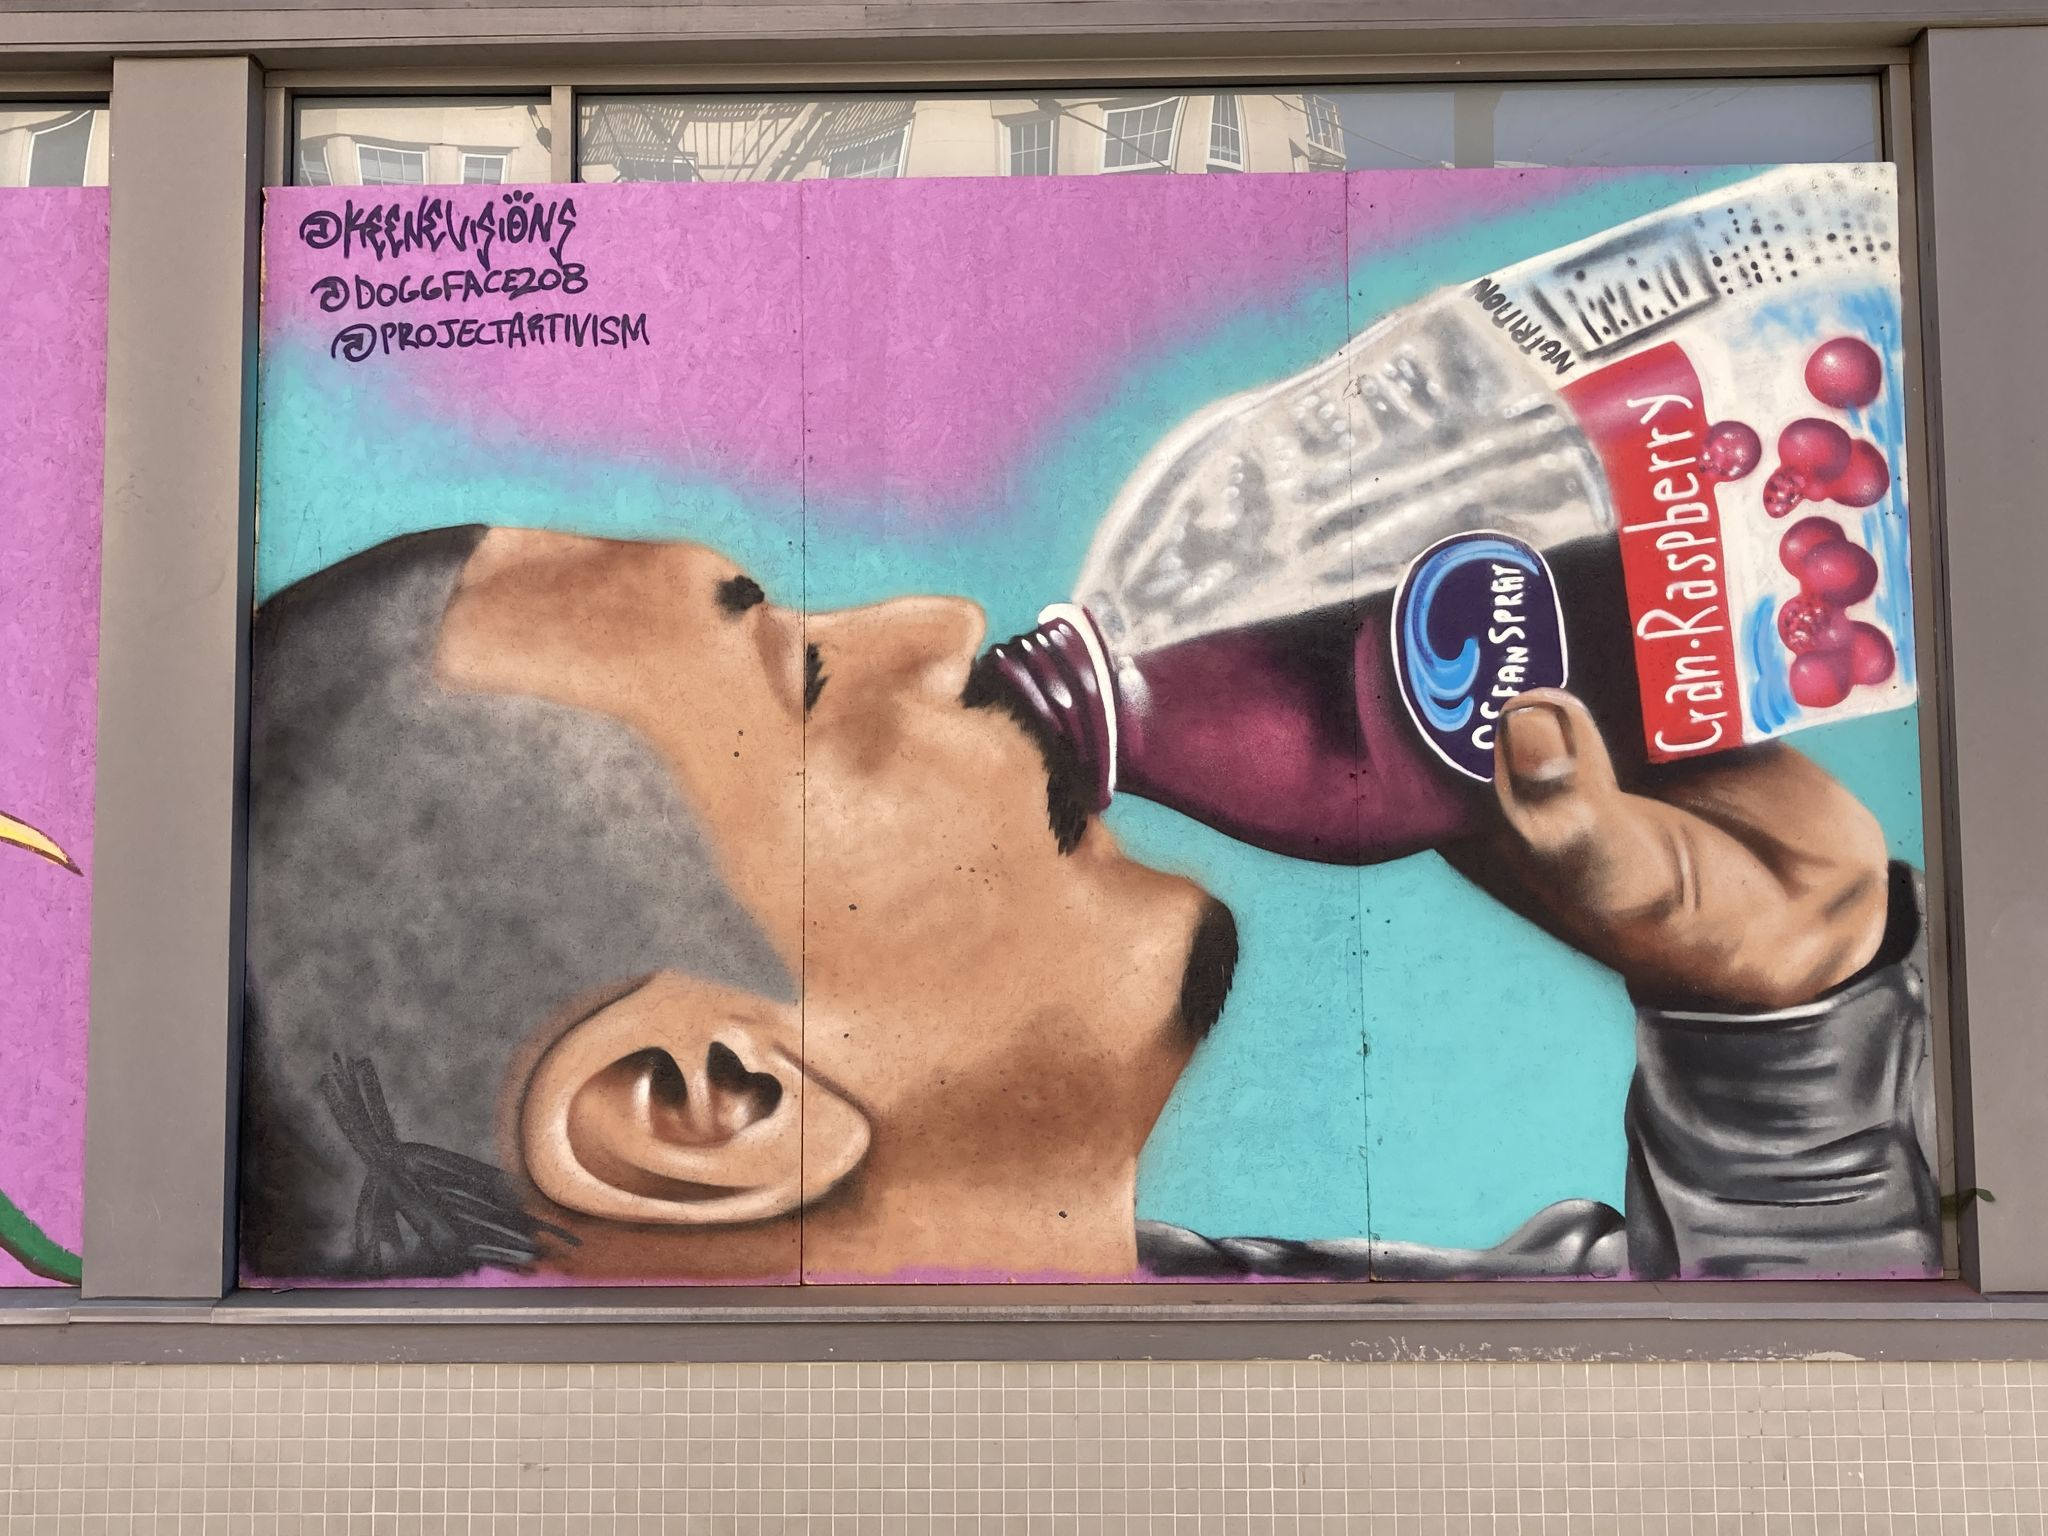 'He's a light when we needed it most': Mural of viral Oceanspray star goes up on Haight St.